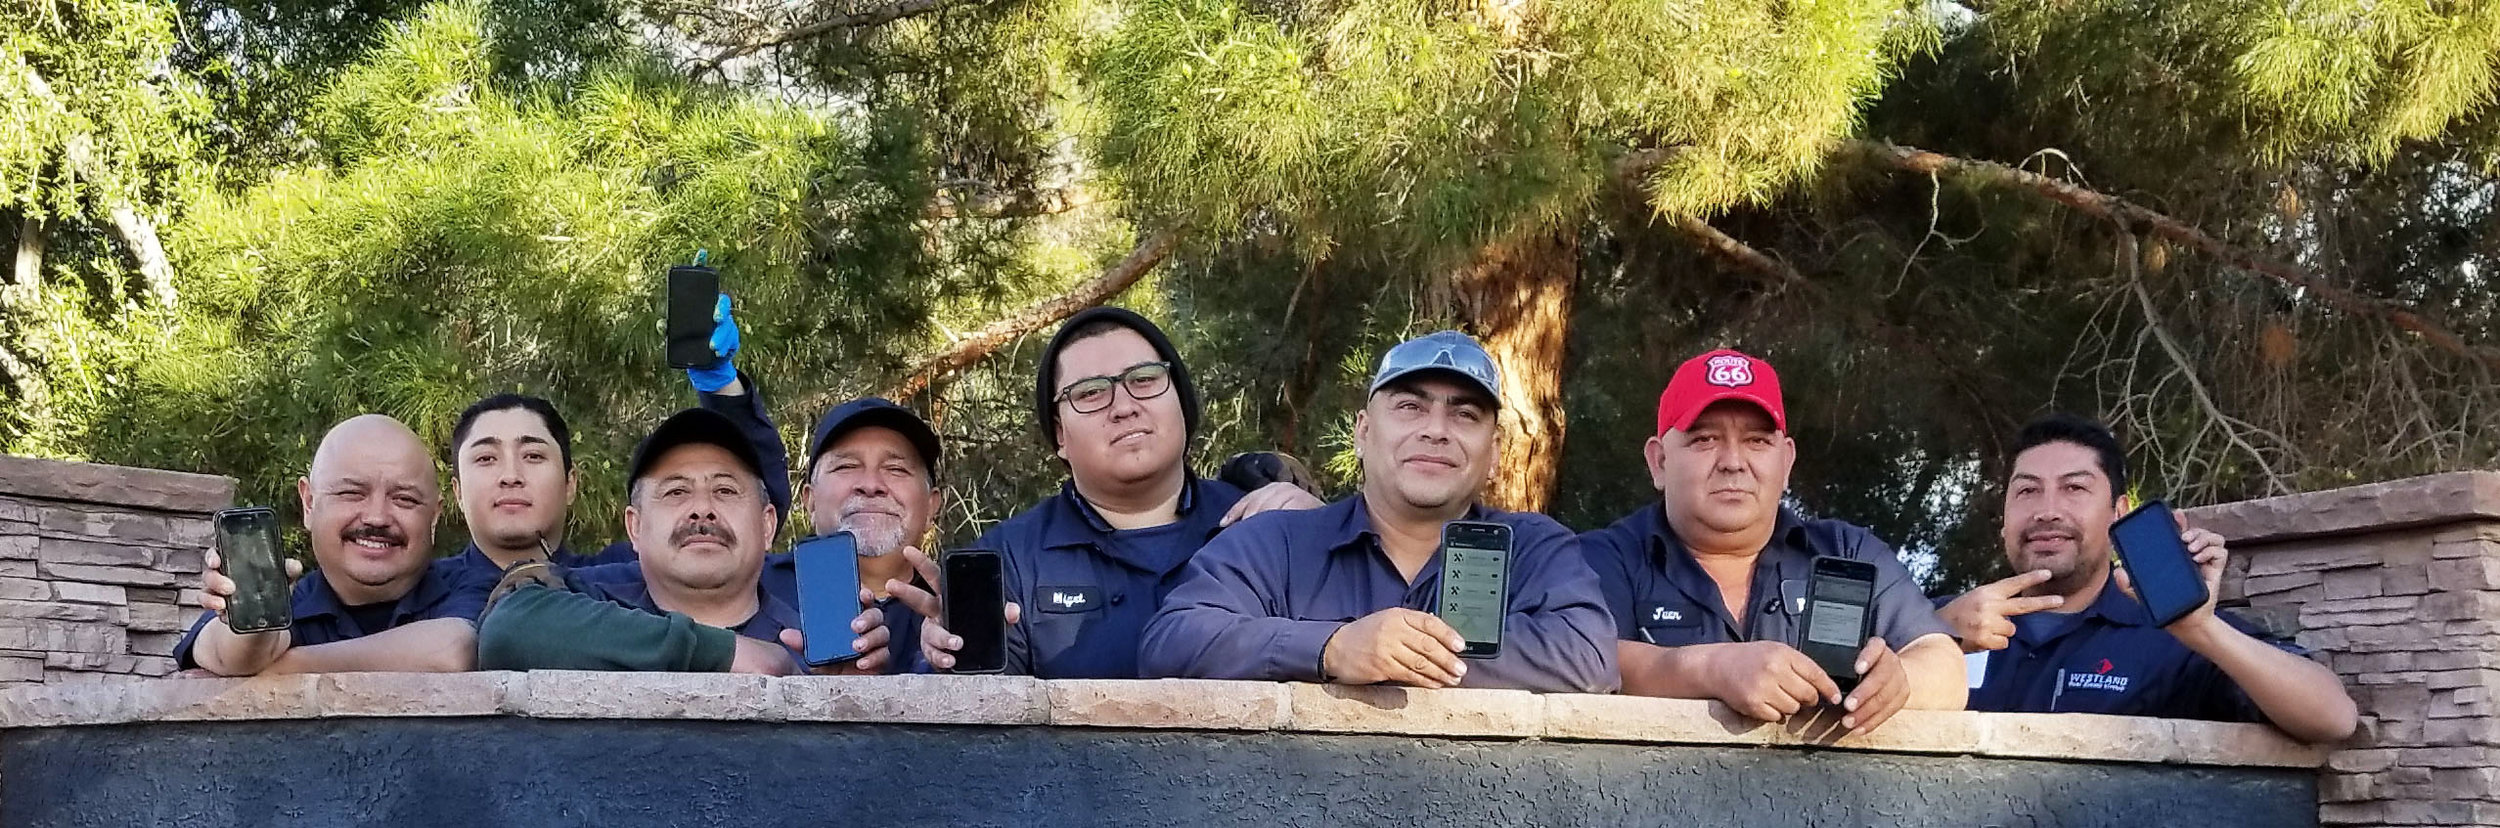 Our Harmon Hills Maintenance Team.